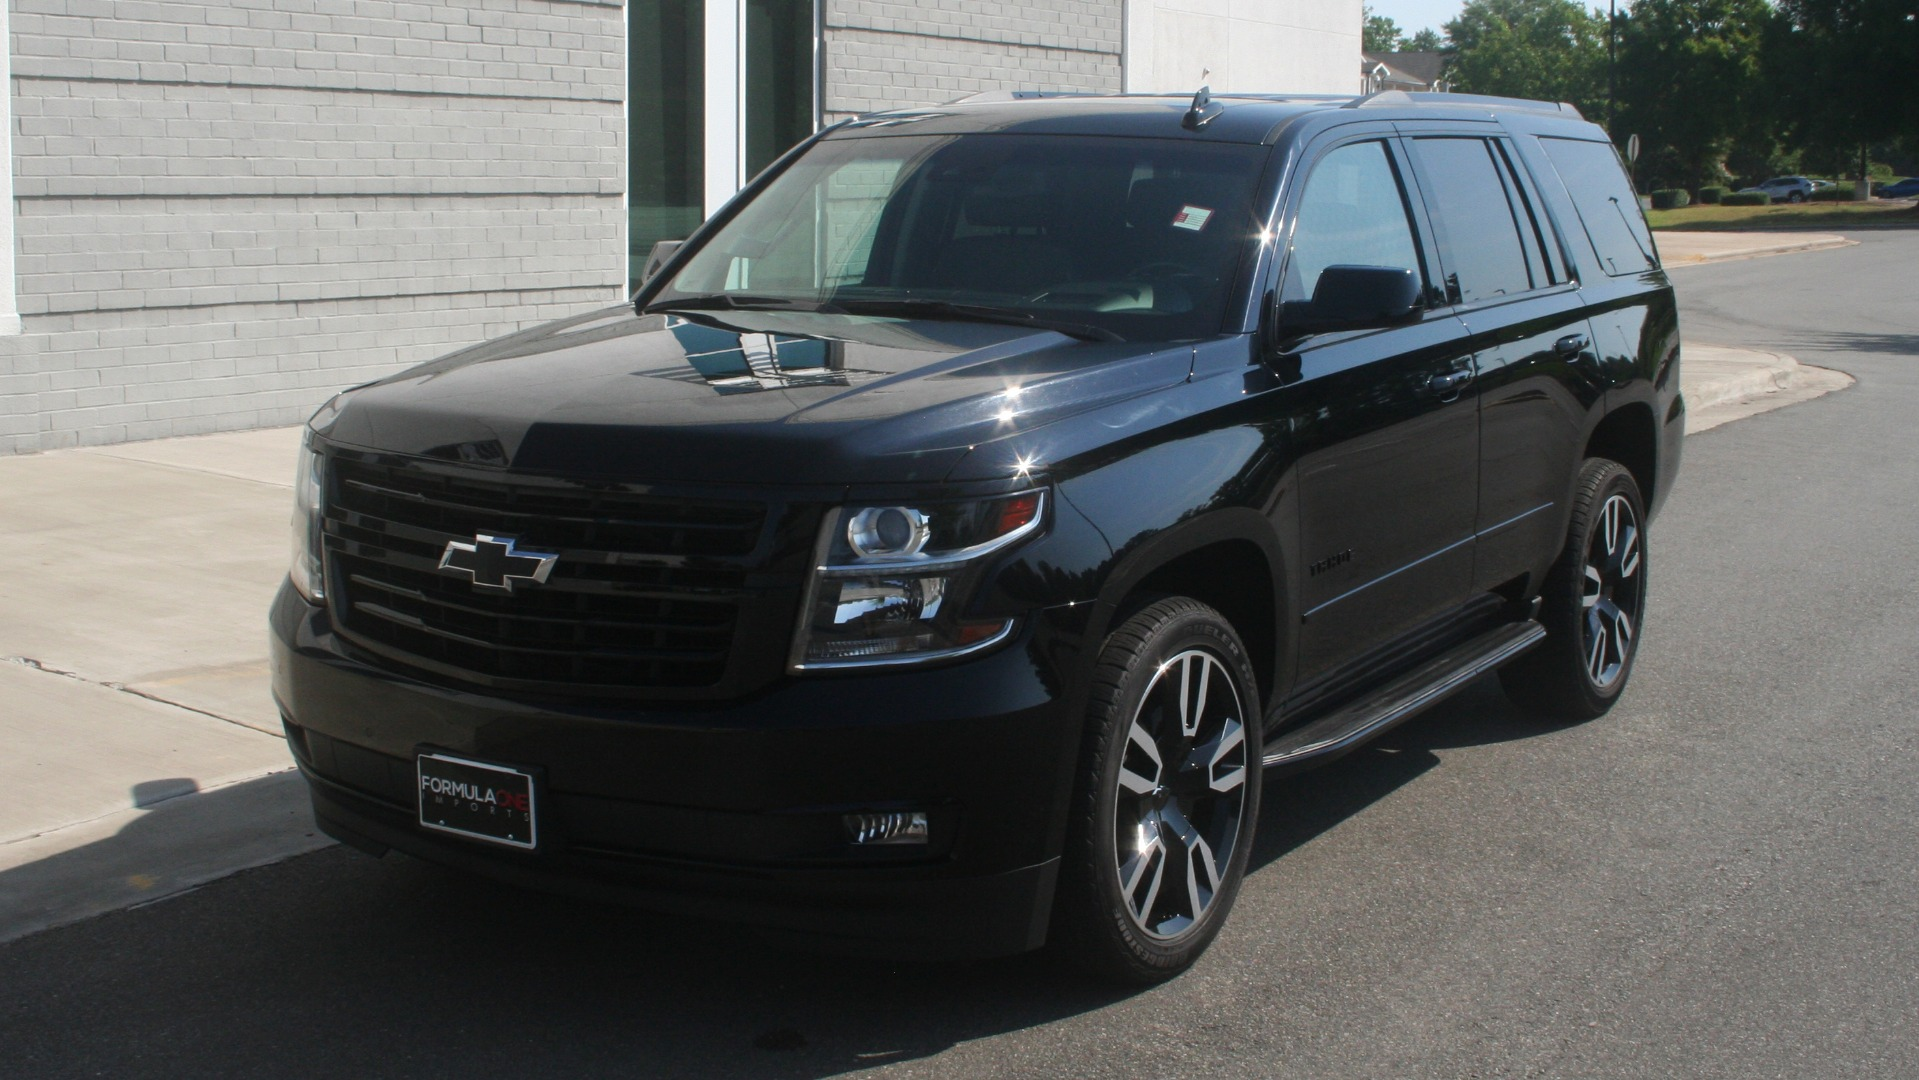 Used 2018 Chevrolet TAHOE PREMIER RST / 4X4 / NAV / BOSE / SUNROOF / 3-ROW / REARVIEW for sale $65,995 at Formula Imports in Charlotte NC 28227 3